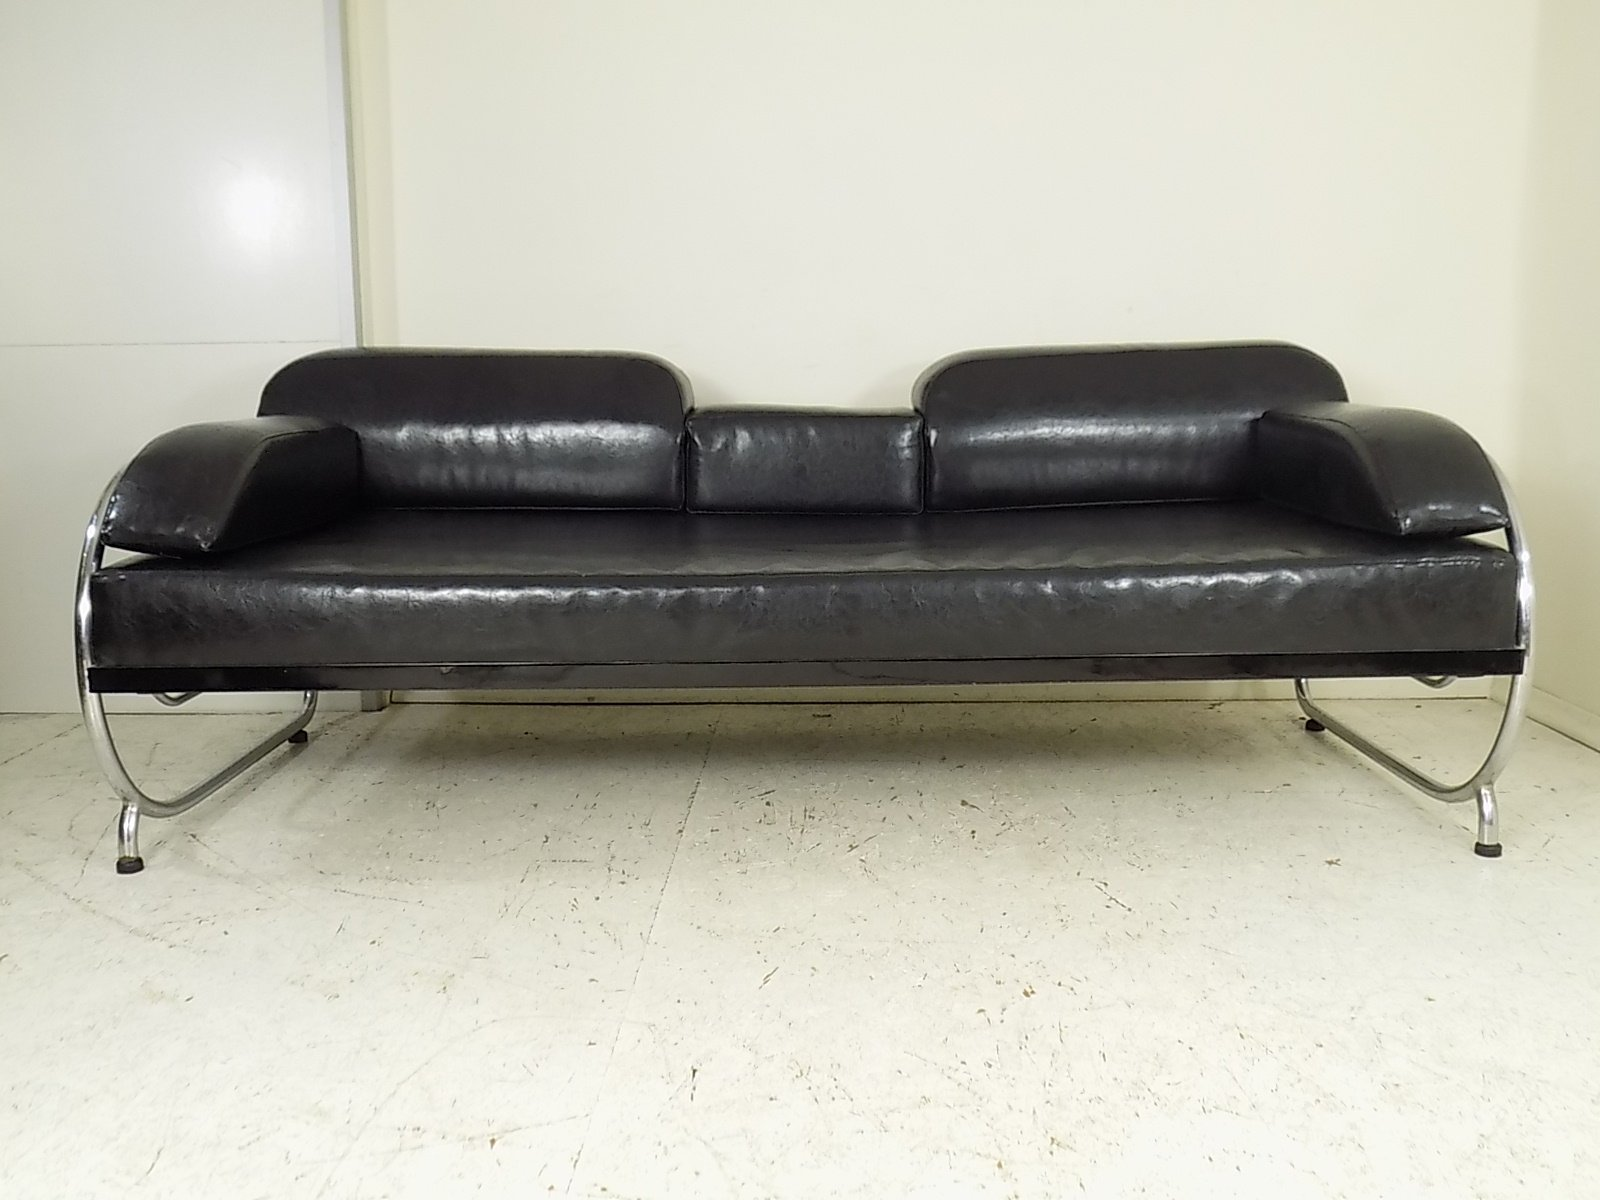 Bauhaus Sofa by Hynek Gottwald 1930s for sale at Pamono